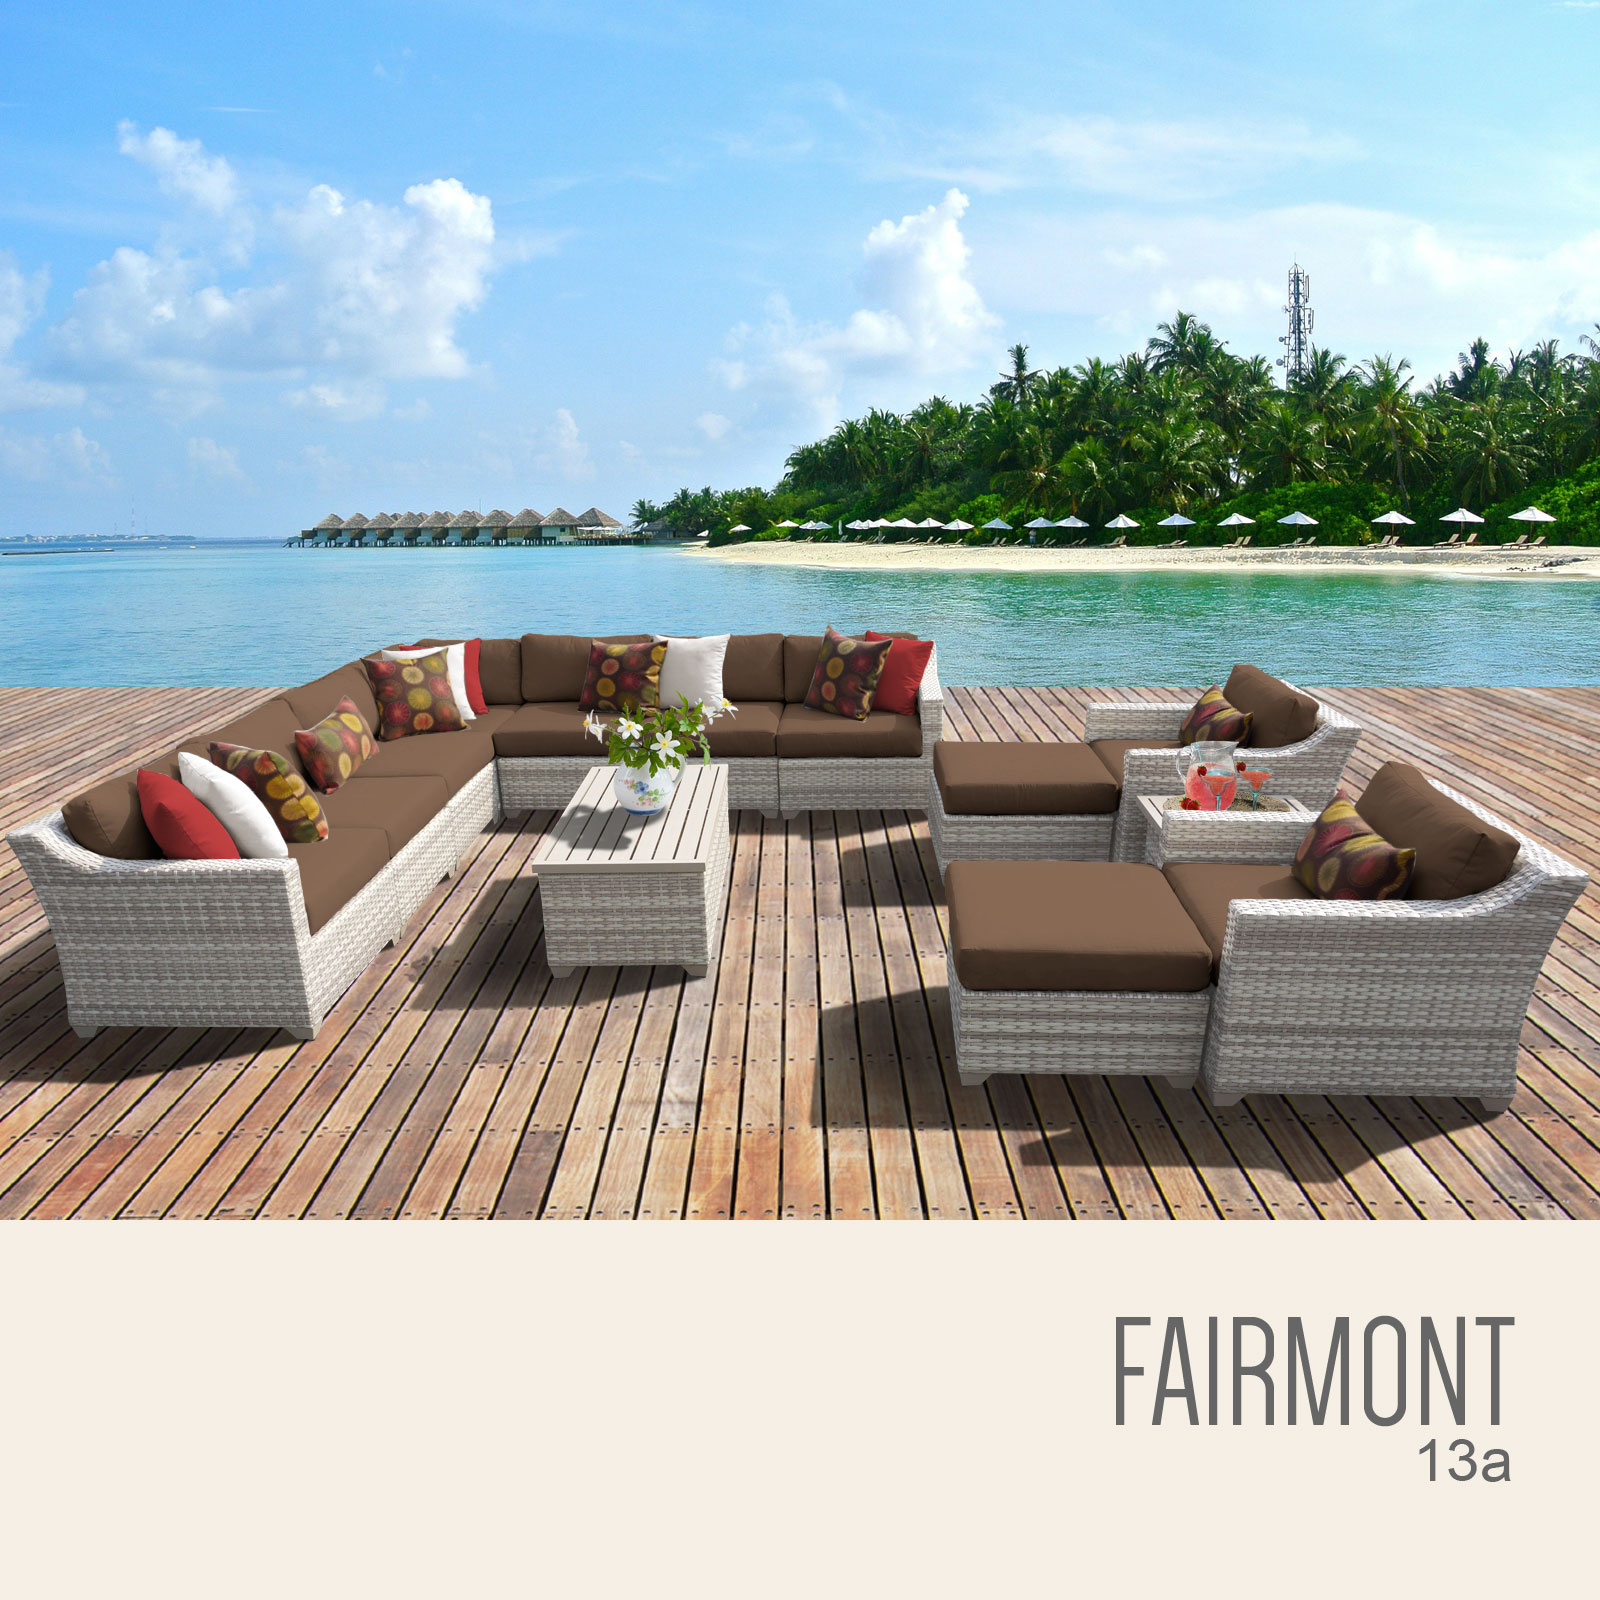 Fairmont 13 Piece Outdoor Wicker Patio Furniture Set 13a by TK Classics